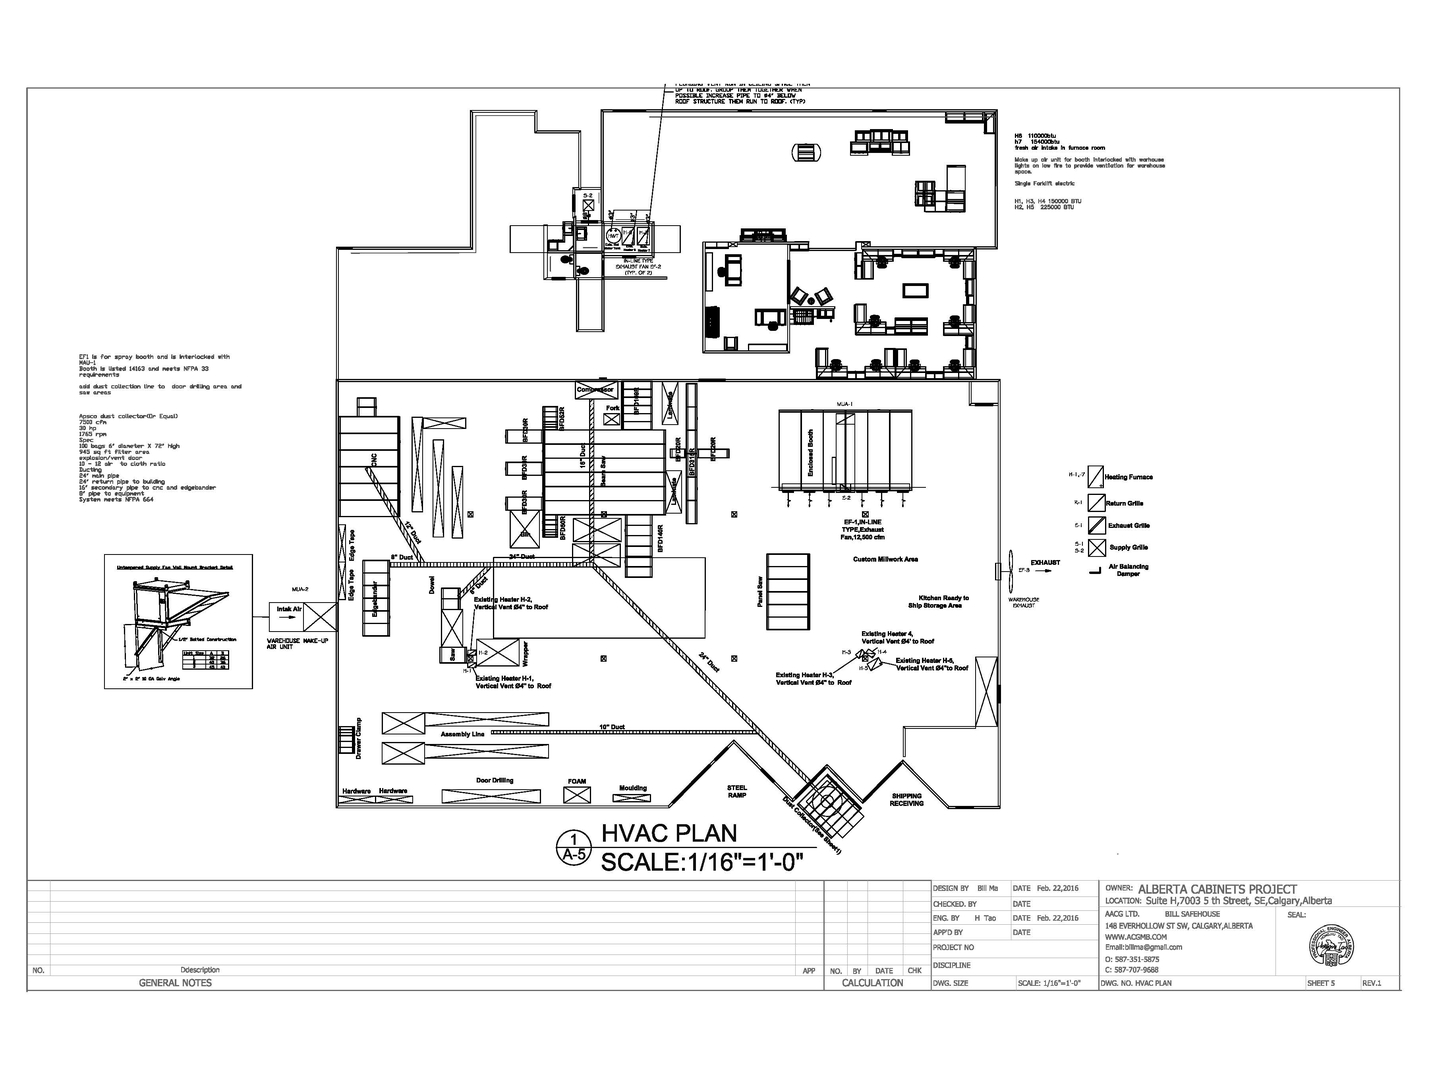 Ductwork Design and Drawings; Fire Protection System